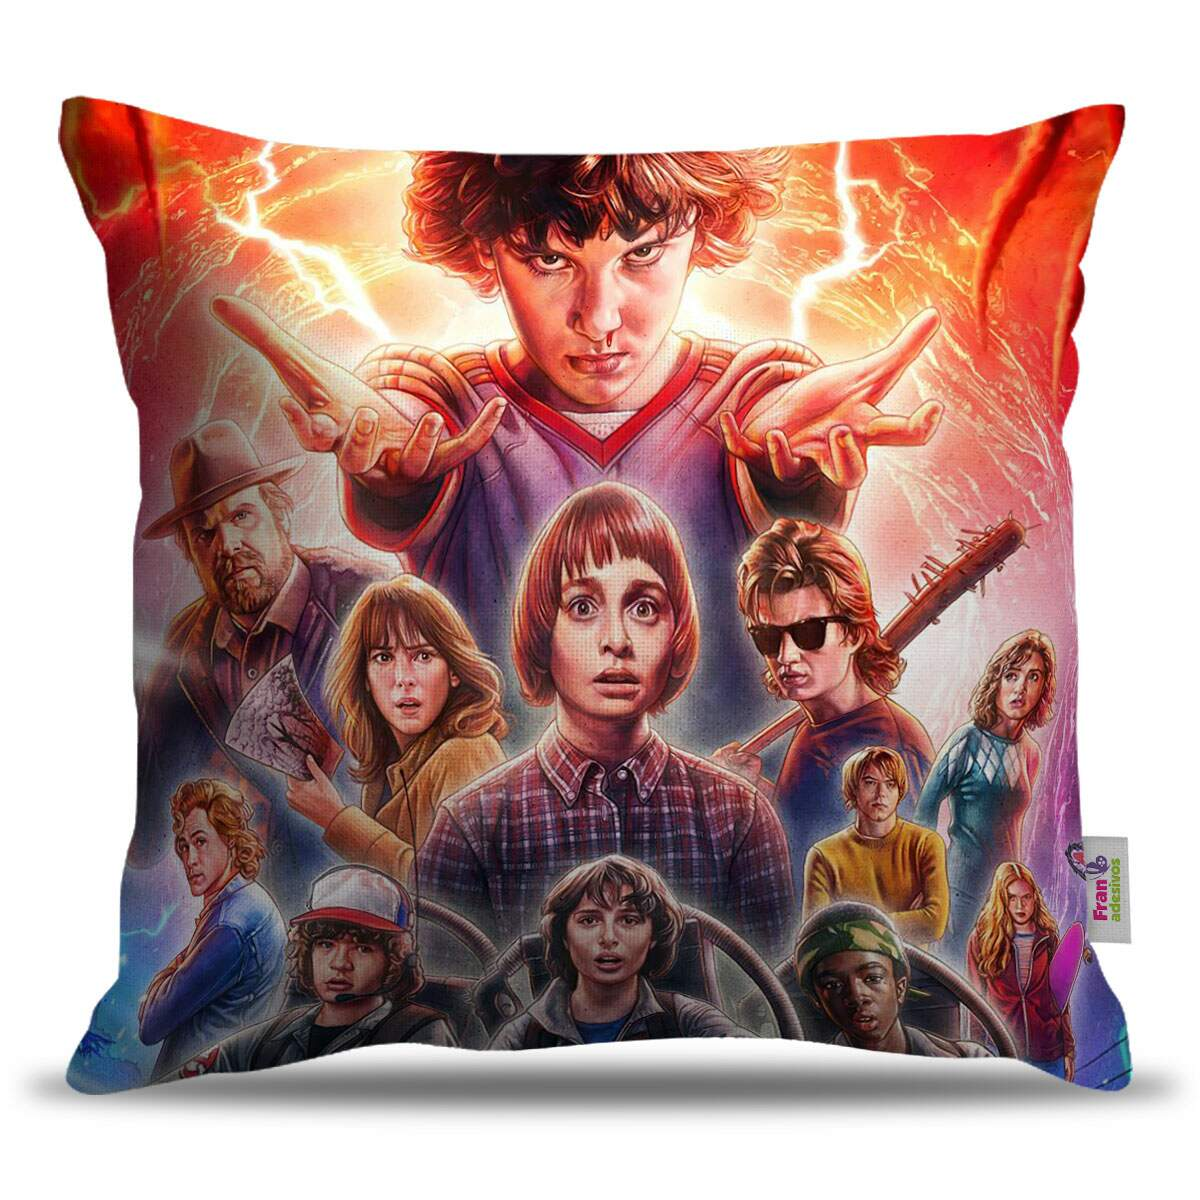 Almofada Decorativa Stranger Things